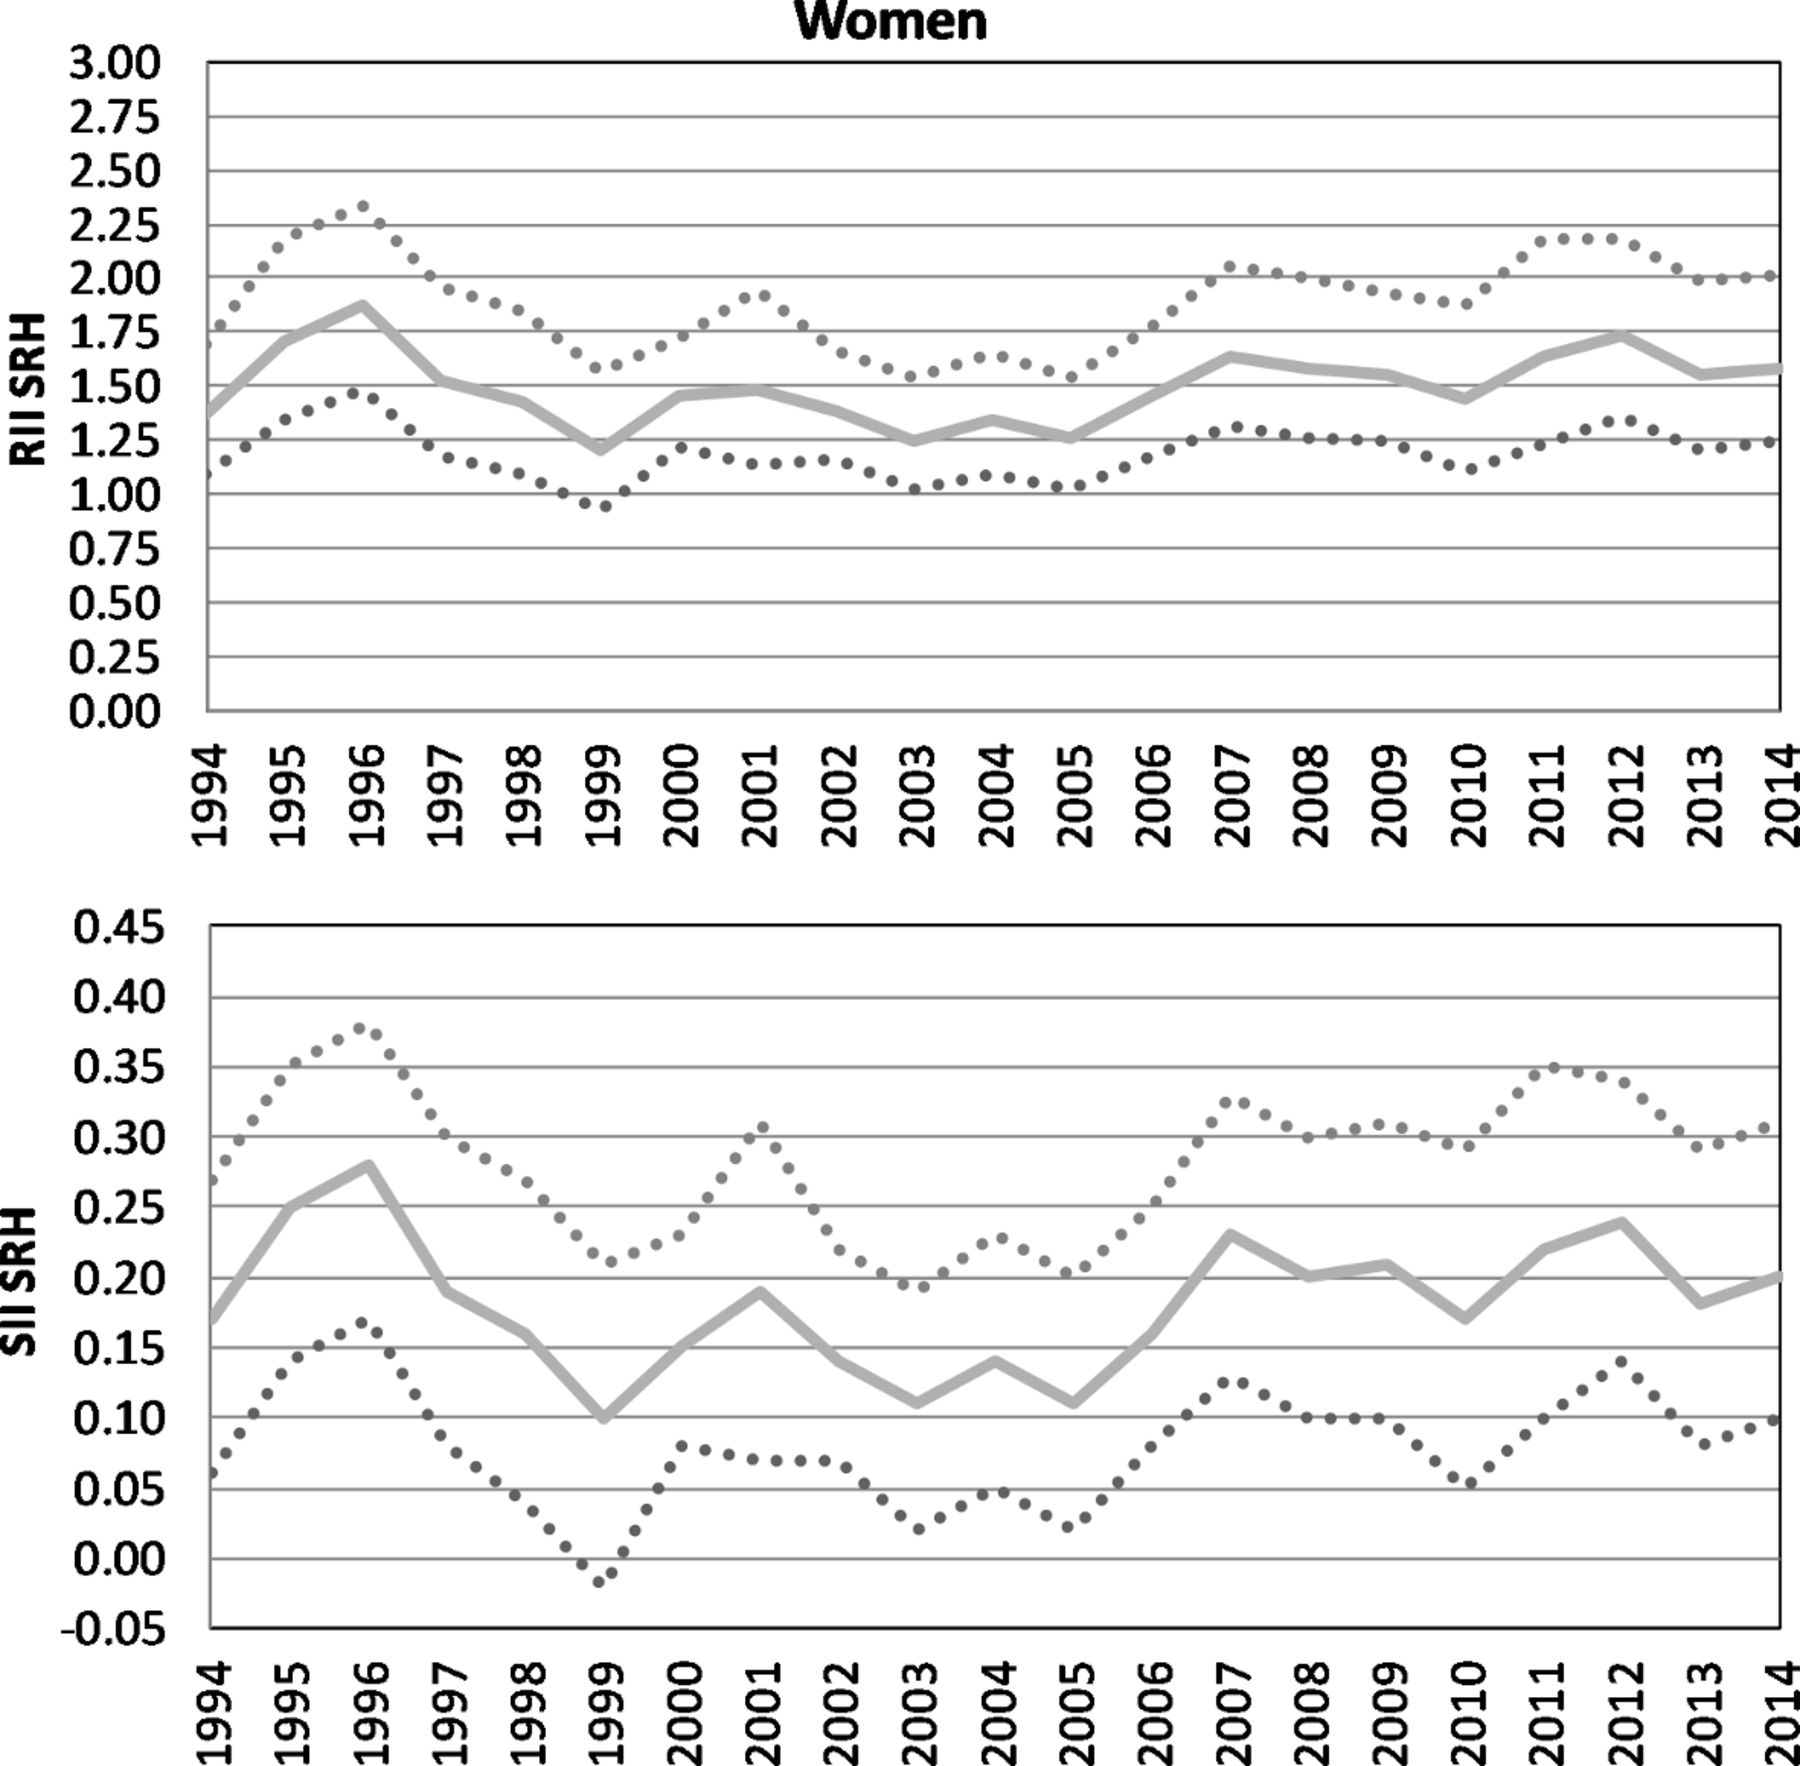 Educational inequalities in subjective health in Germany from 1994